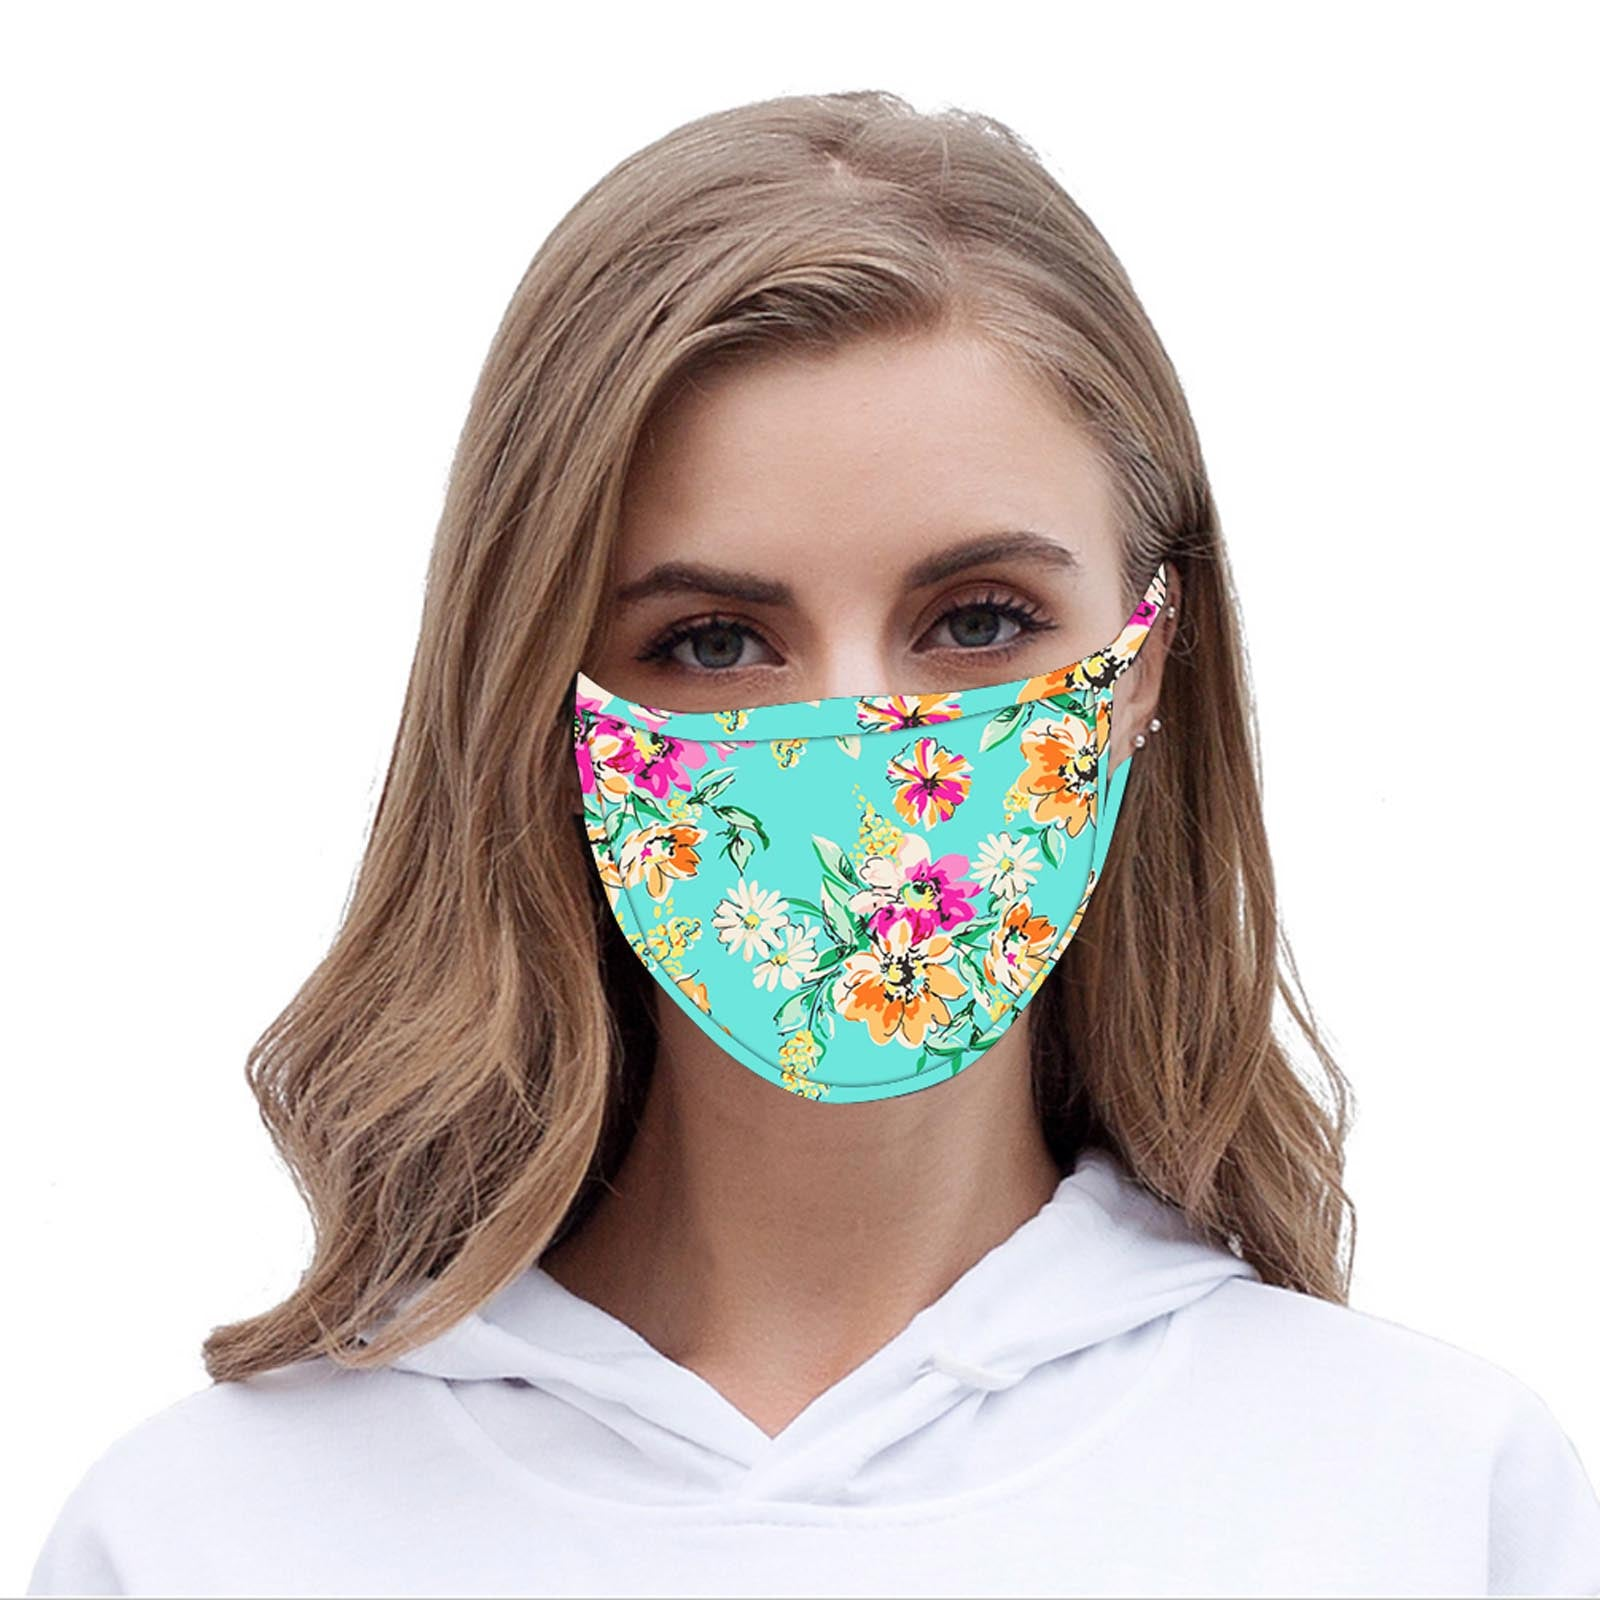 FCM-053 American Bling Floral Print Cloth Face Mask 1Pc Fashion Mask New.